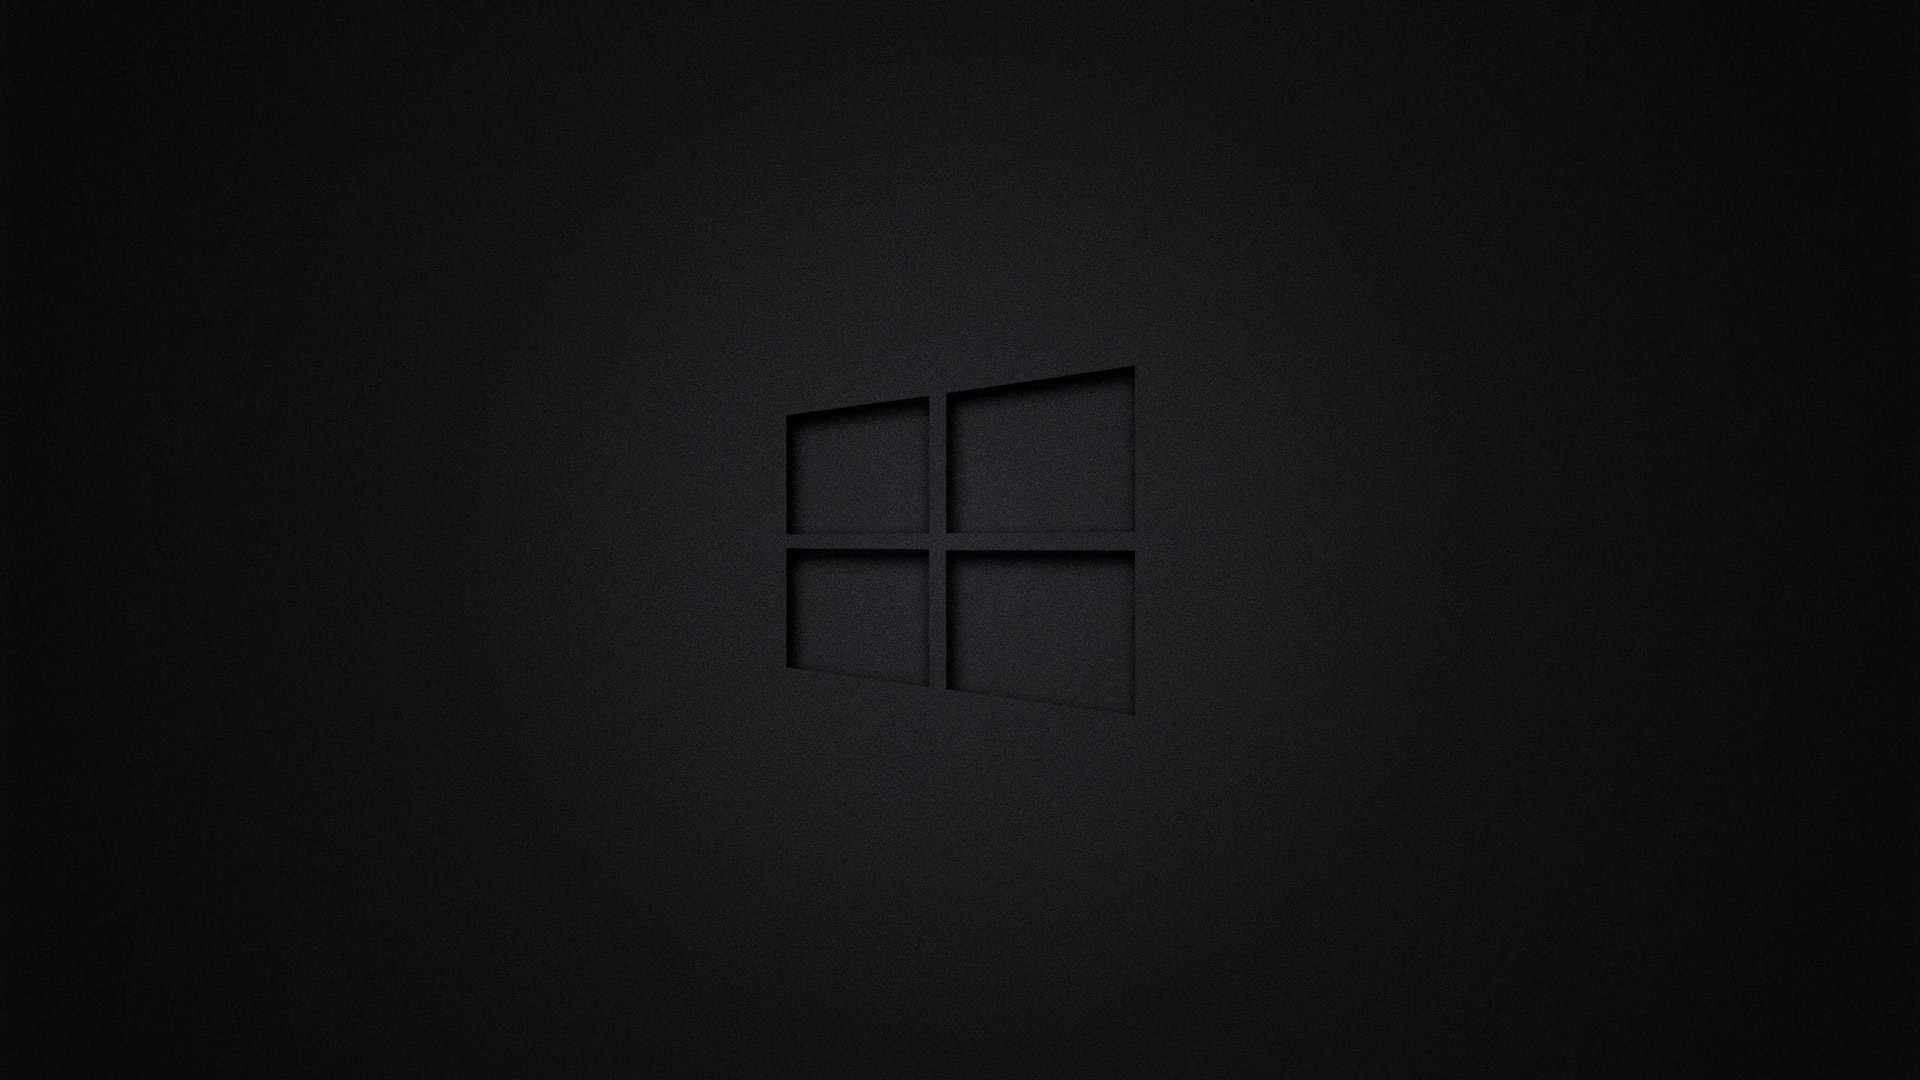 Windows 10 Dark 1280x1024 Resolution